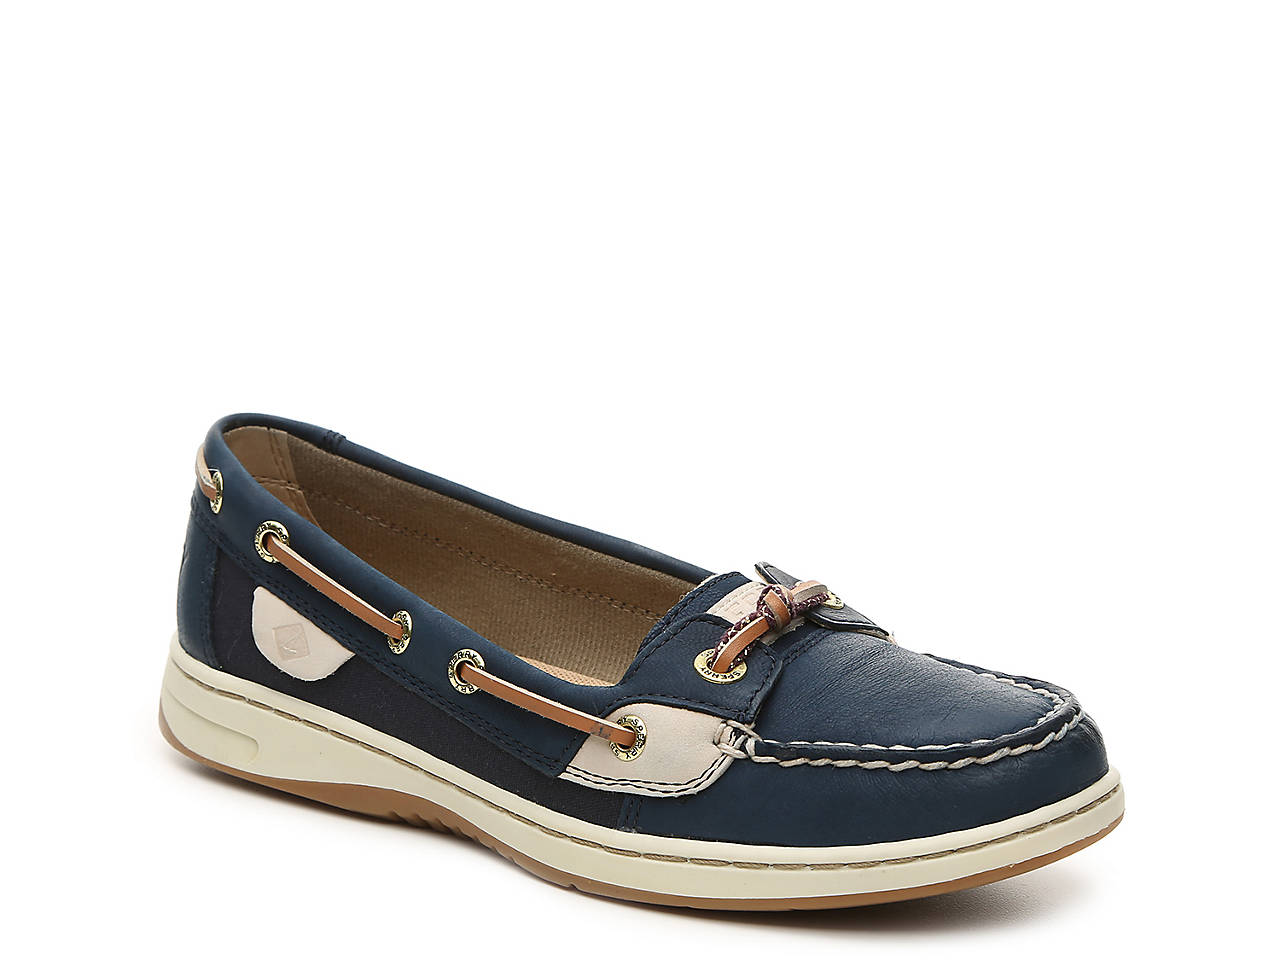 Sperry Top Sider Quest Rhythm Boat Shoe